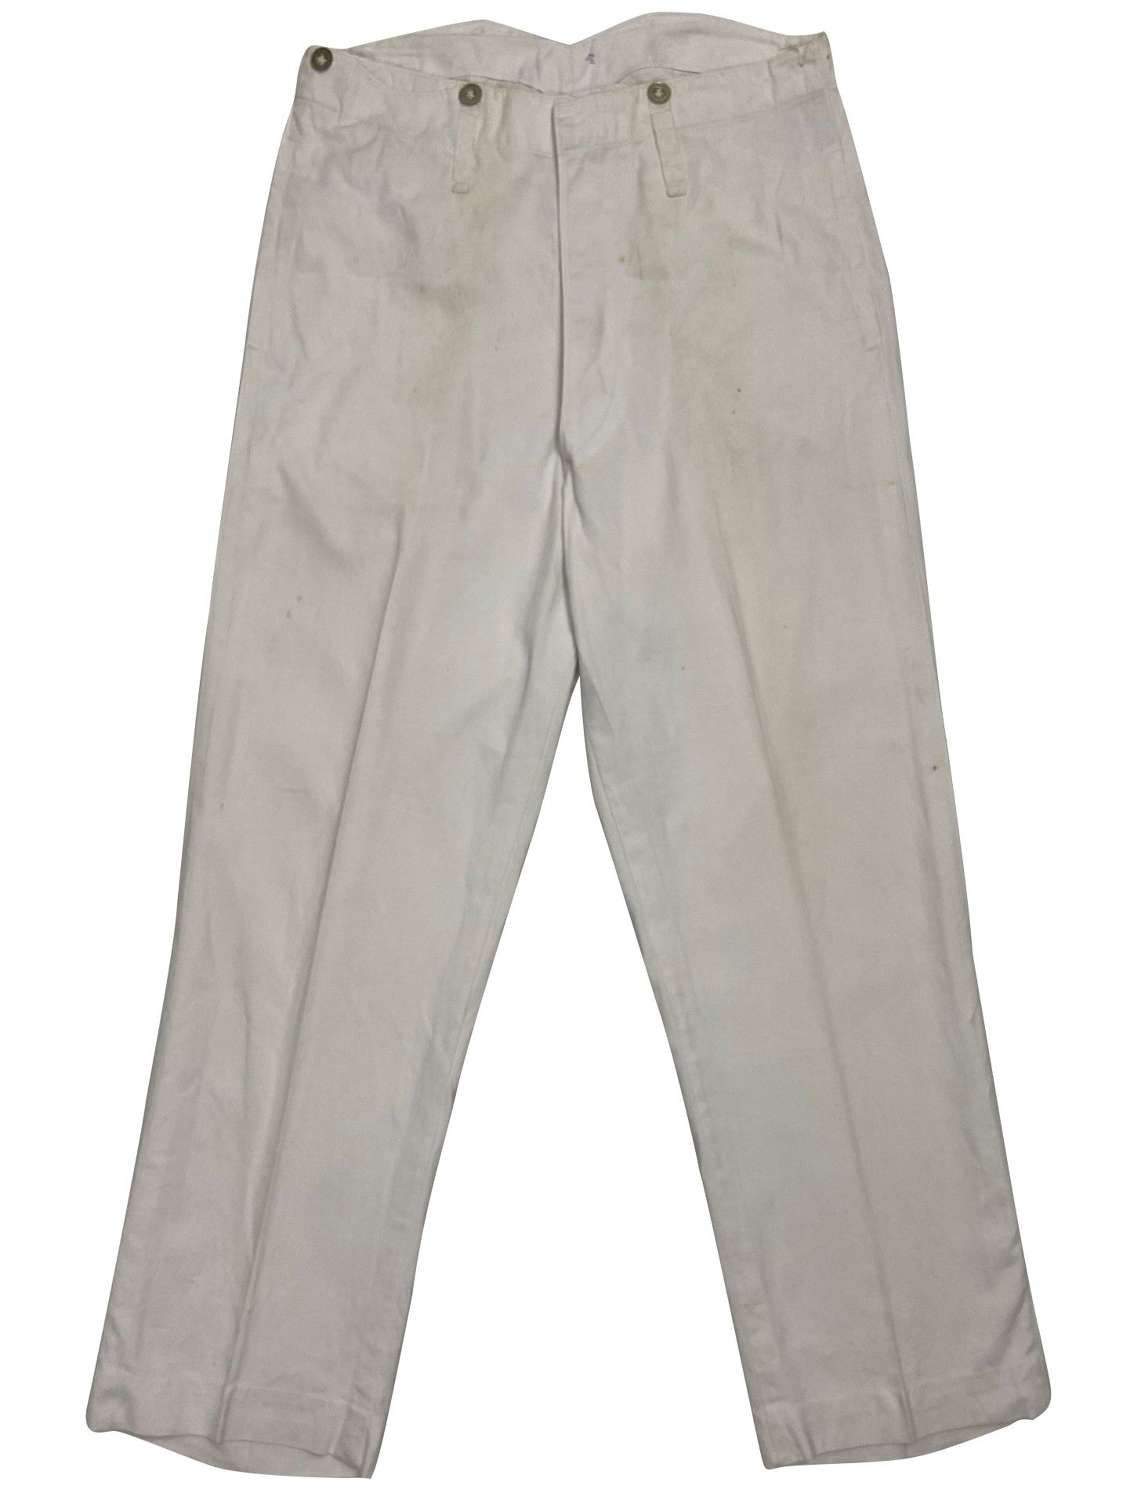 Original 1930s Royal Navy White Fatigue Work Trousers